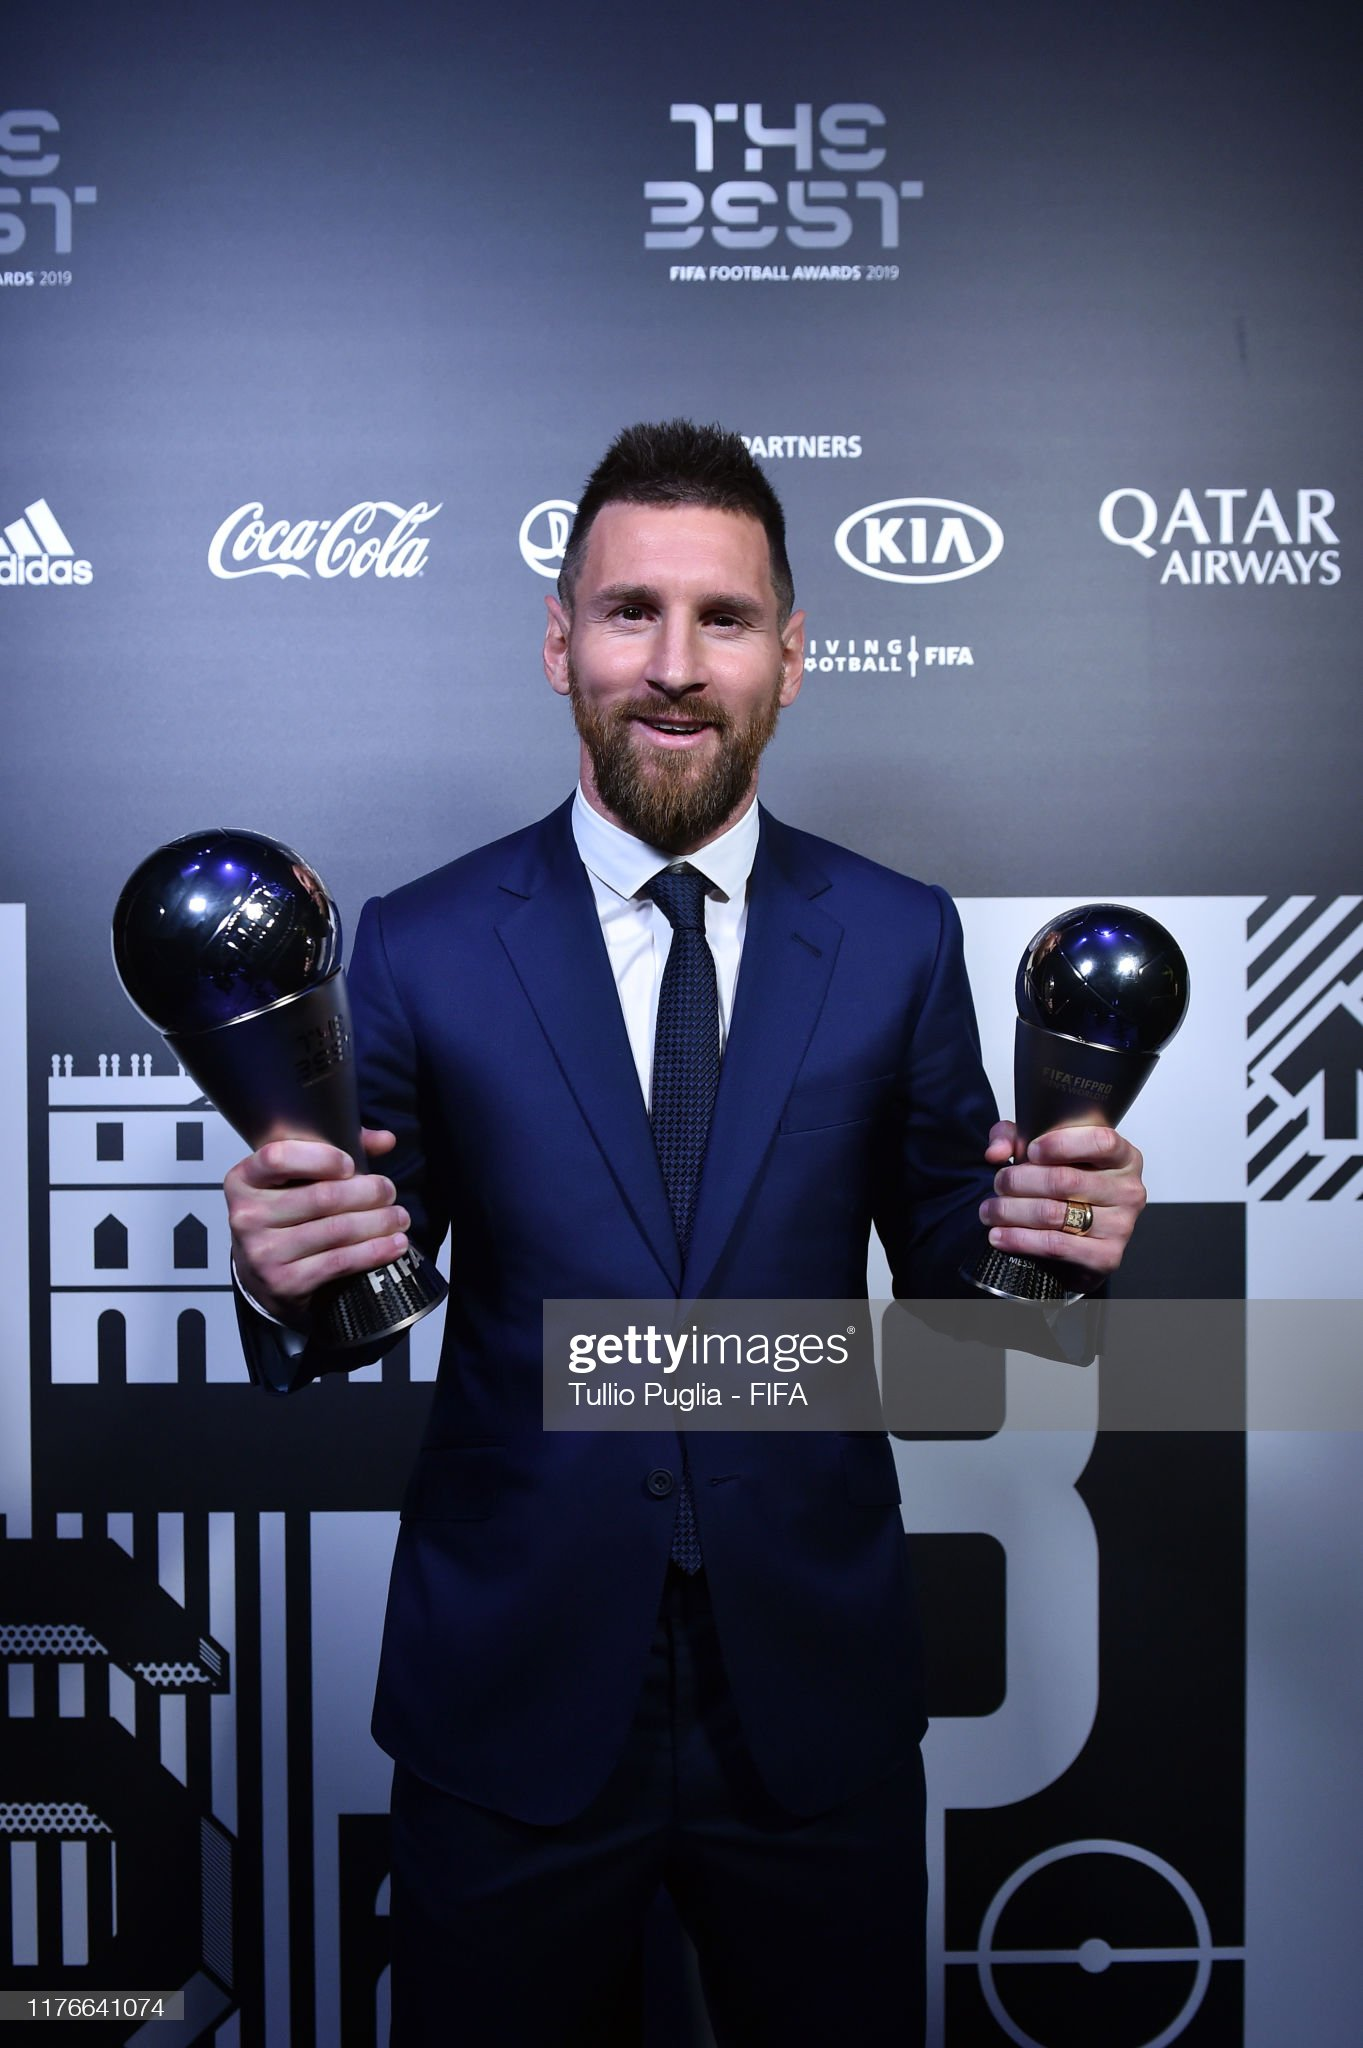 The Best FIFA Football Awards 2019 Lionel-messi-of-fc-barcelona-and-argentina-poses-with-the-the-best-picture-id1176641074?s=2048x2048